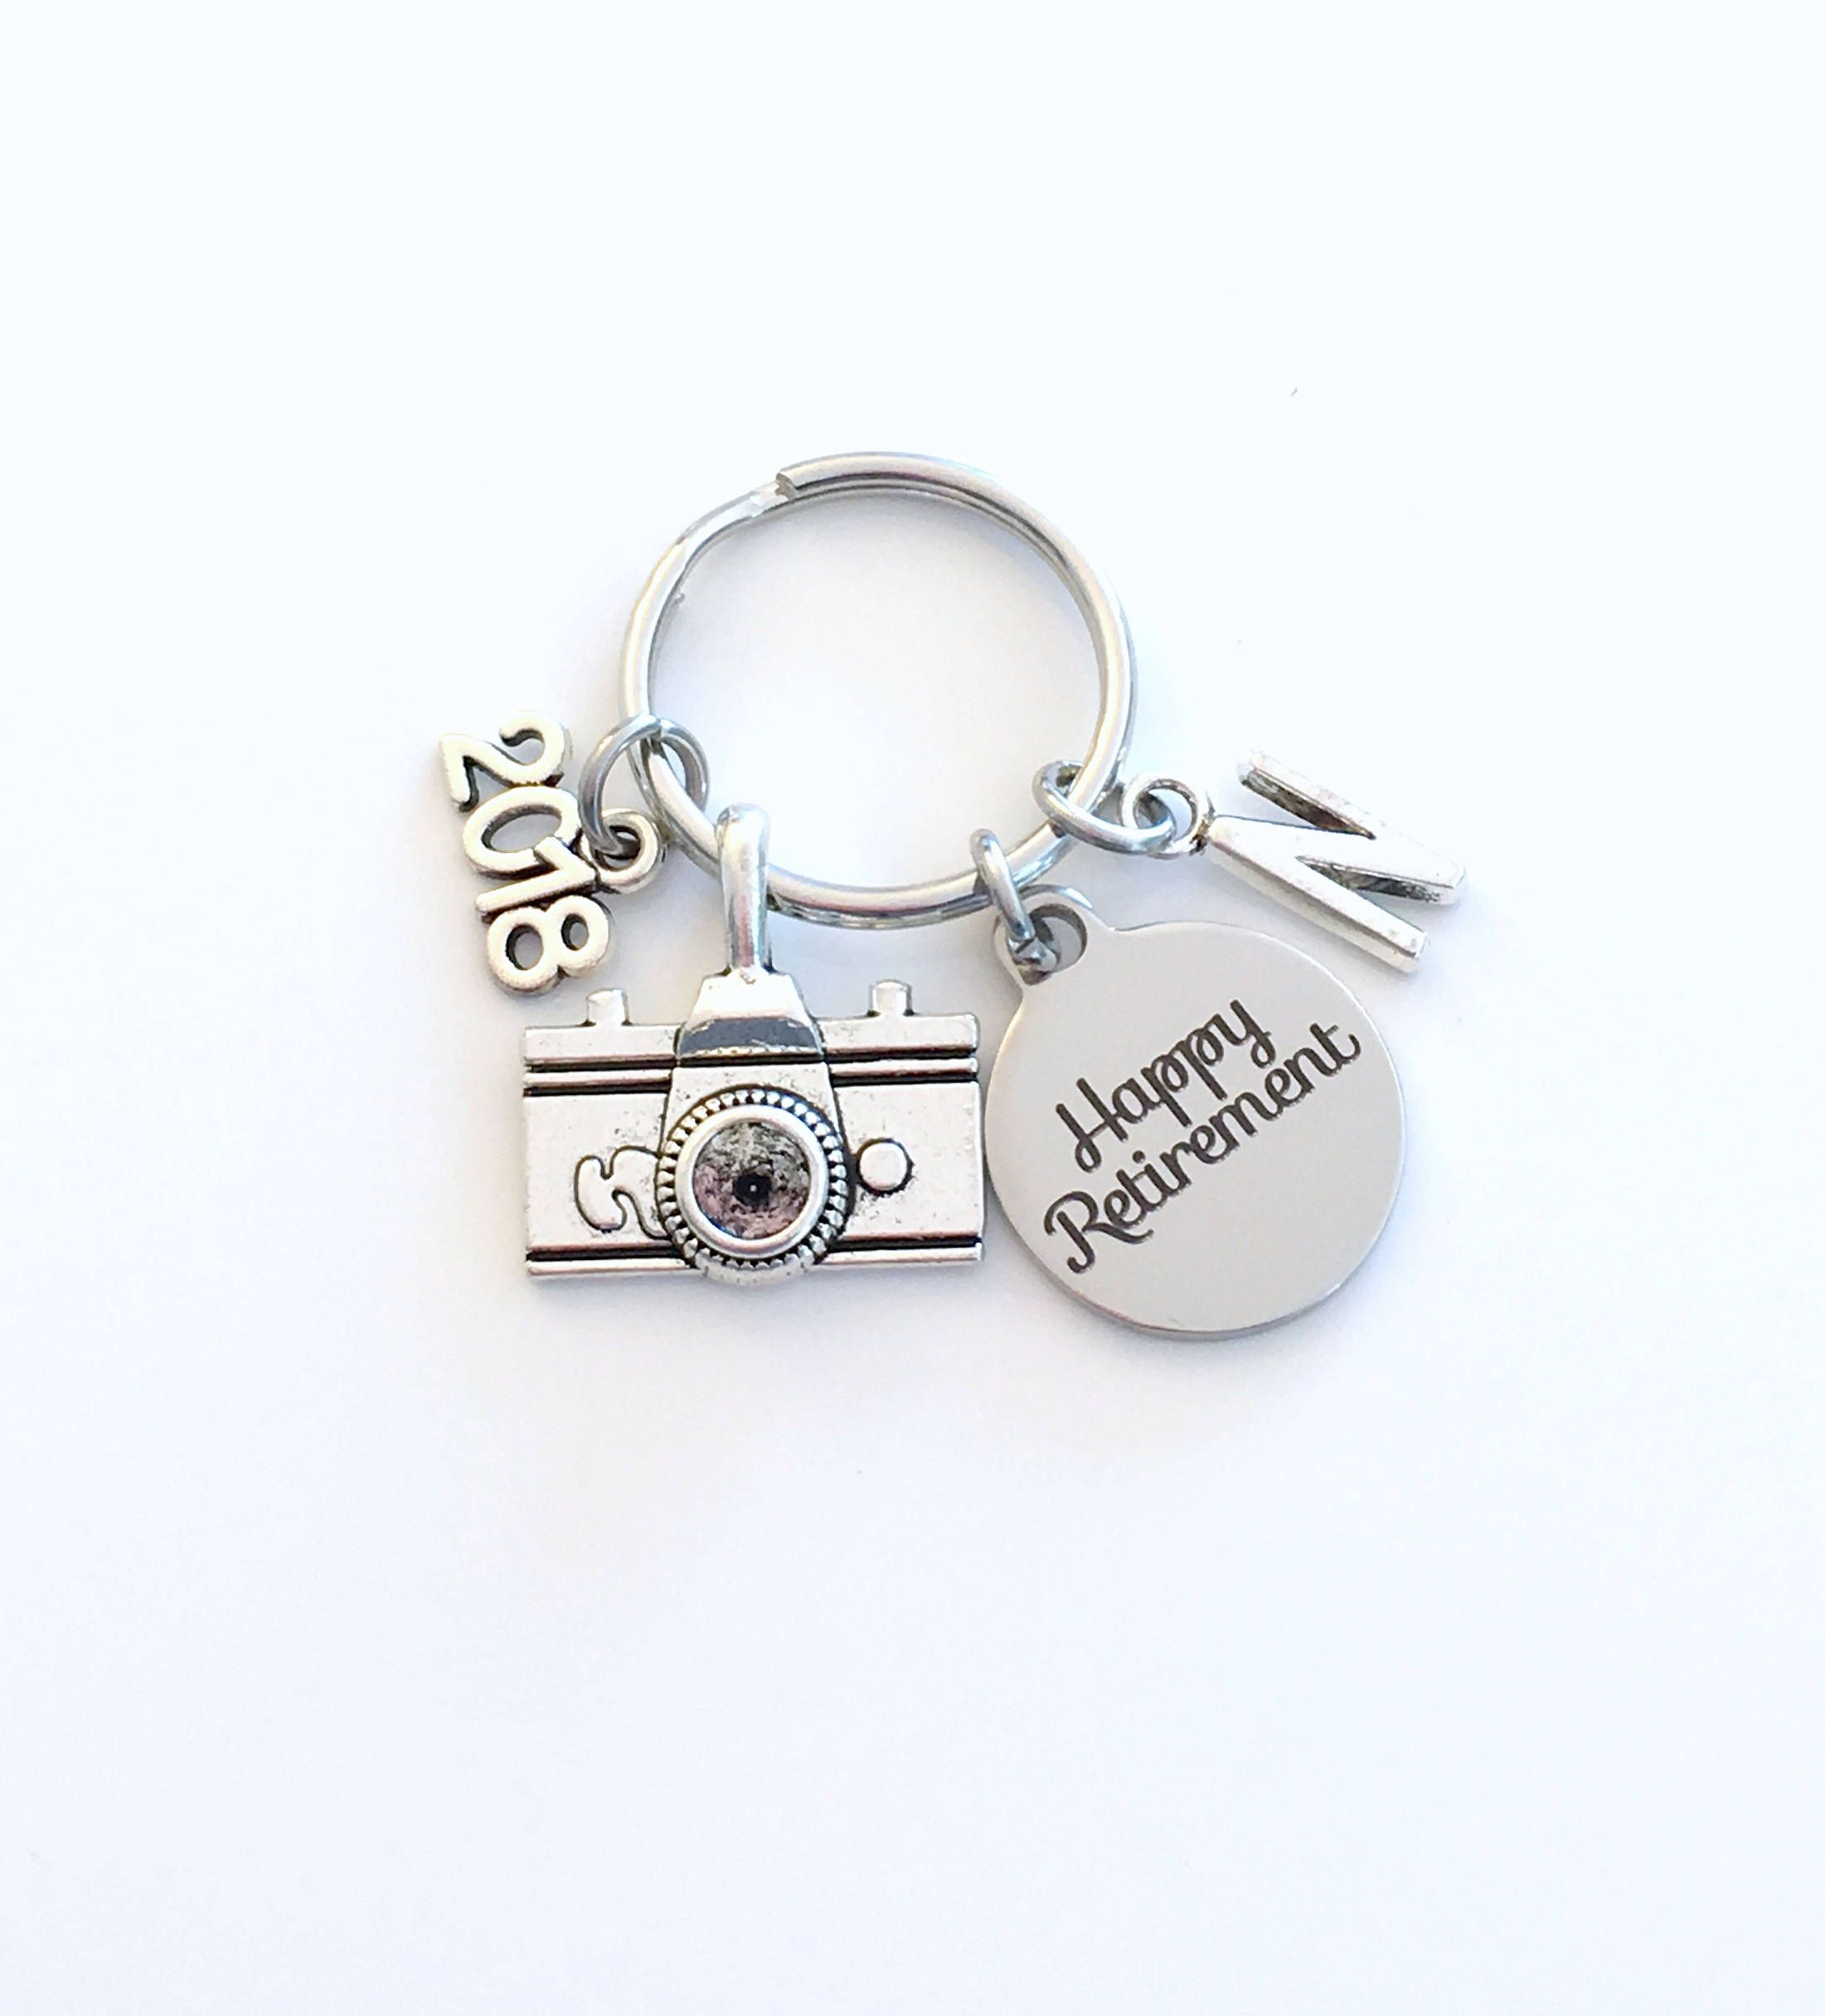 Retirement Gift For Photographer Keychain  Photo Technician